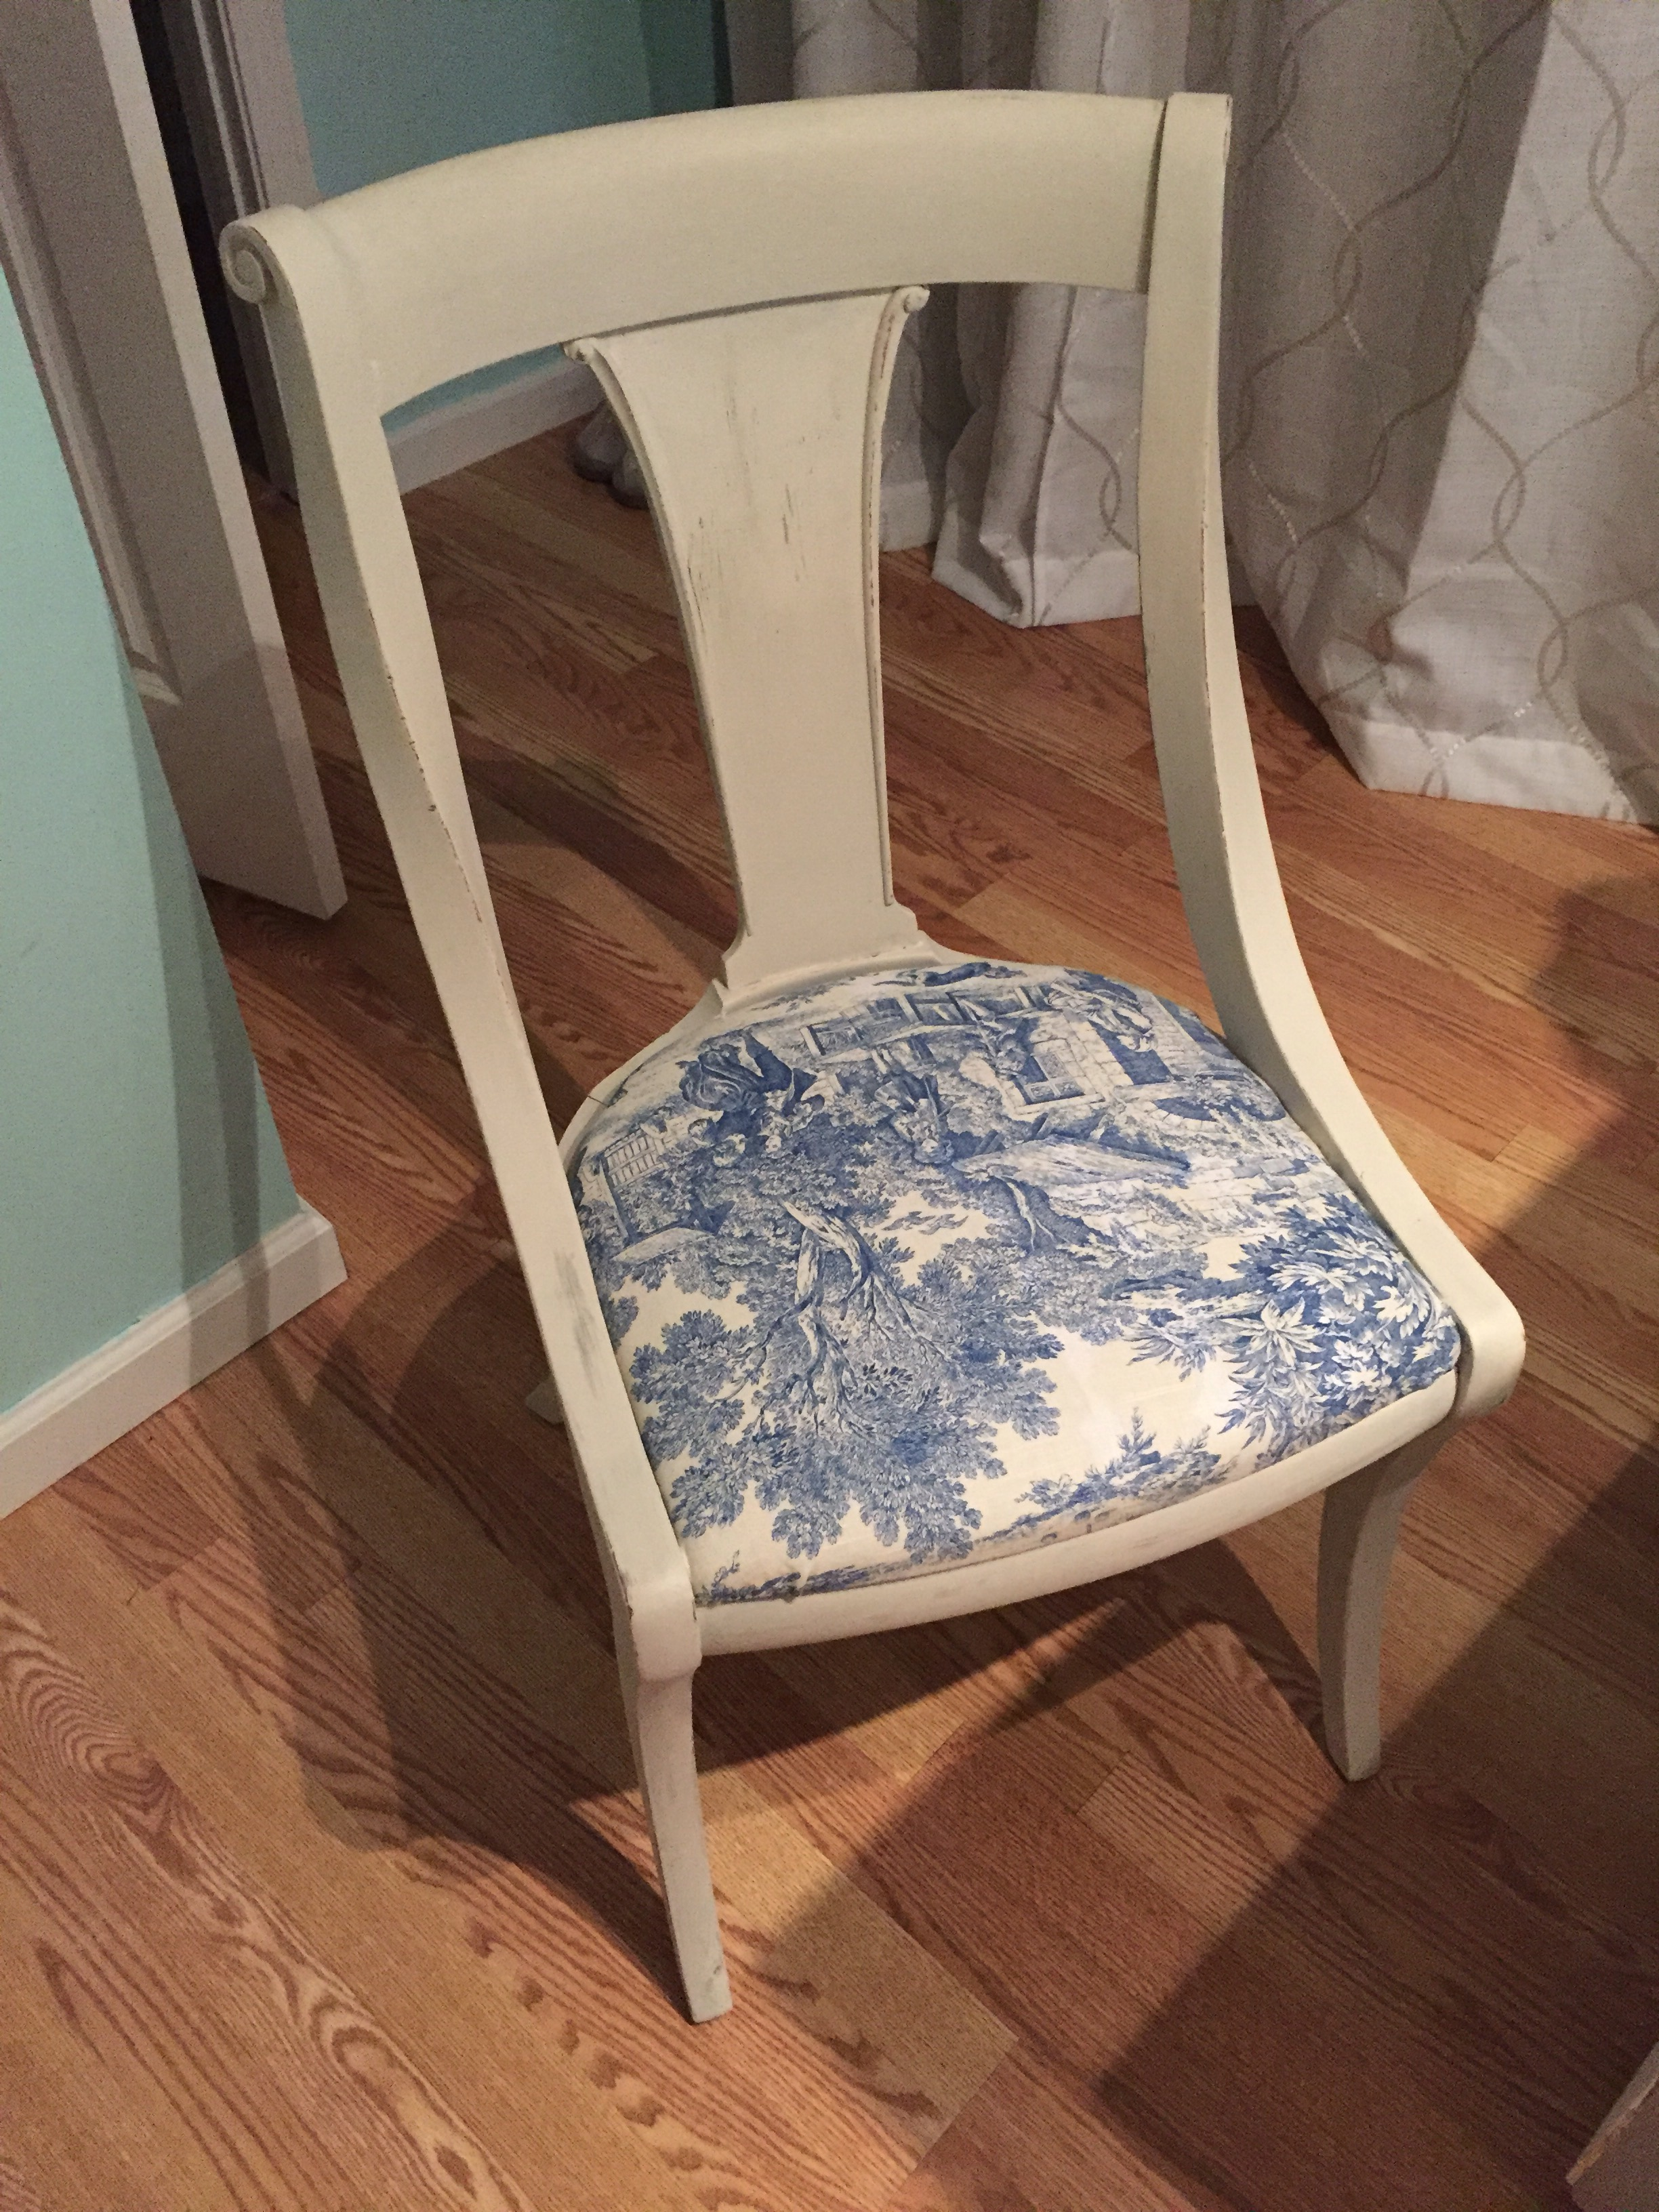 Pleasing How An Old Chair Became French Ct Living Lifestyle Download Free Architecture Designs Scobabritishbridgeorg